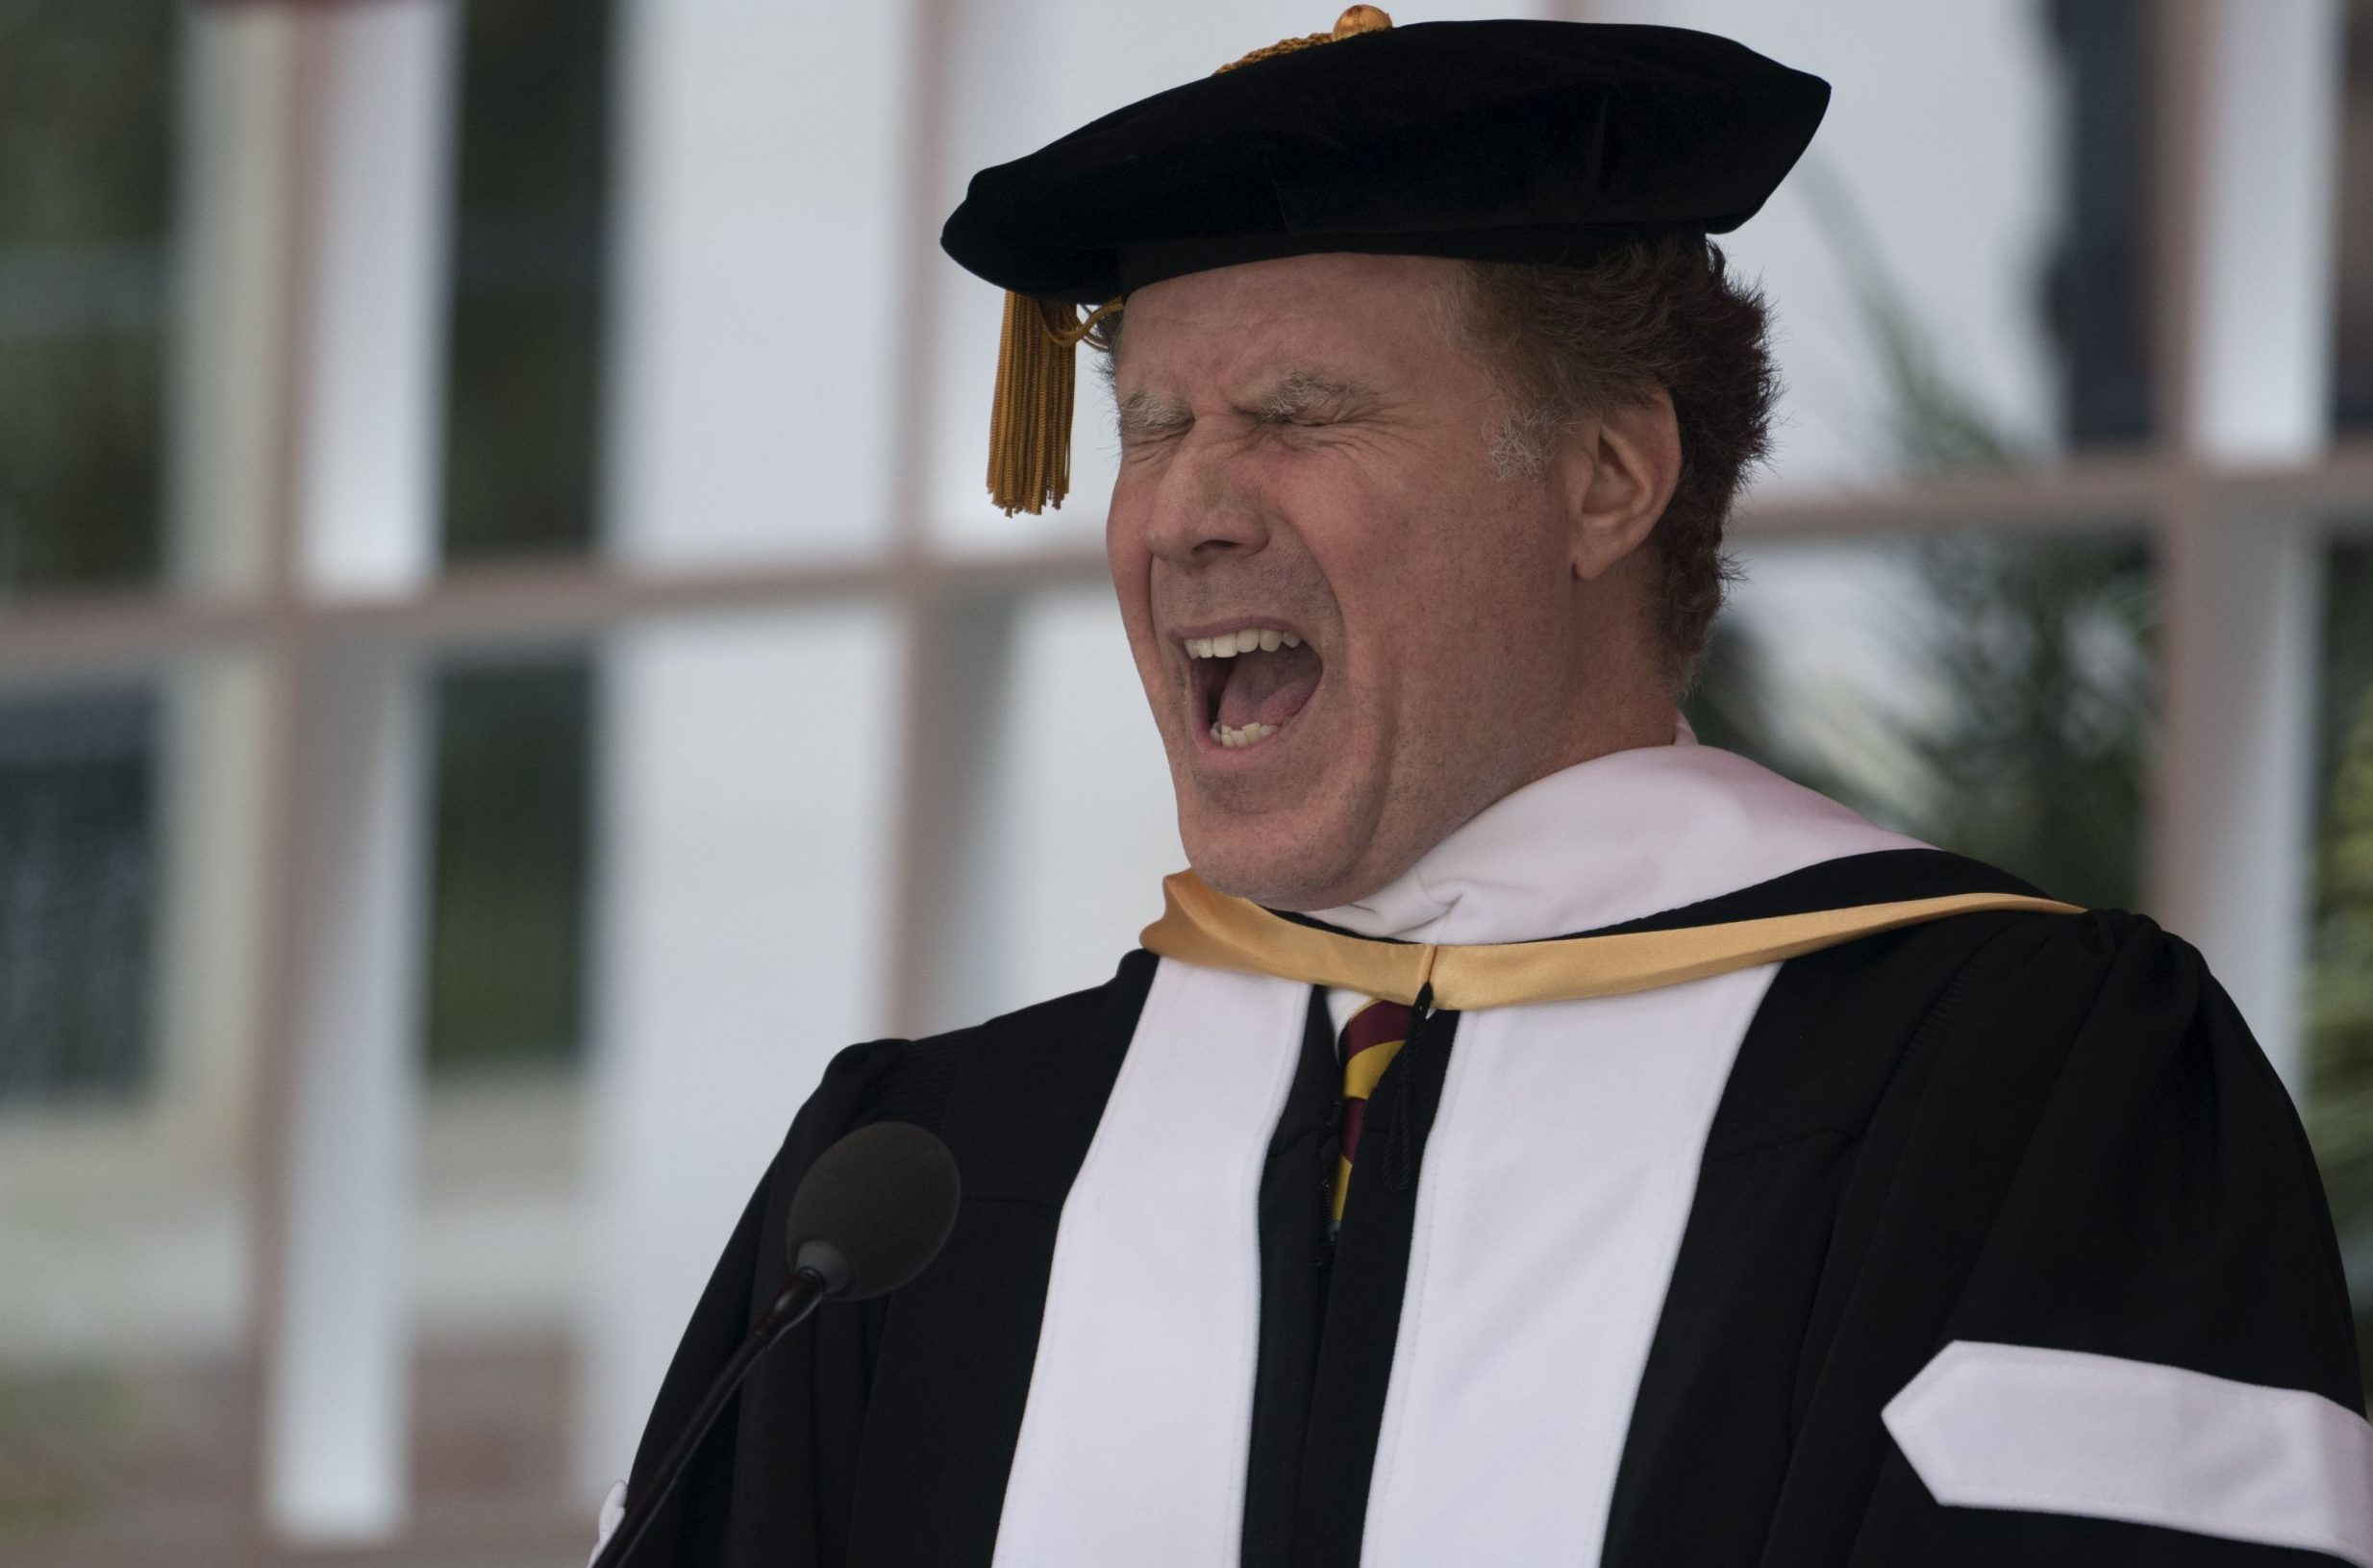 Will Ferrell gave a hilarious graduation speech and belted out Whitney Houston